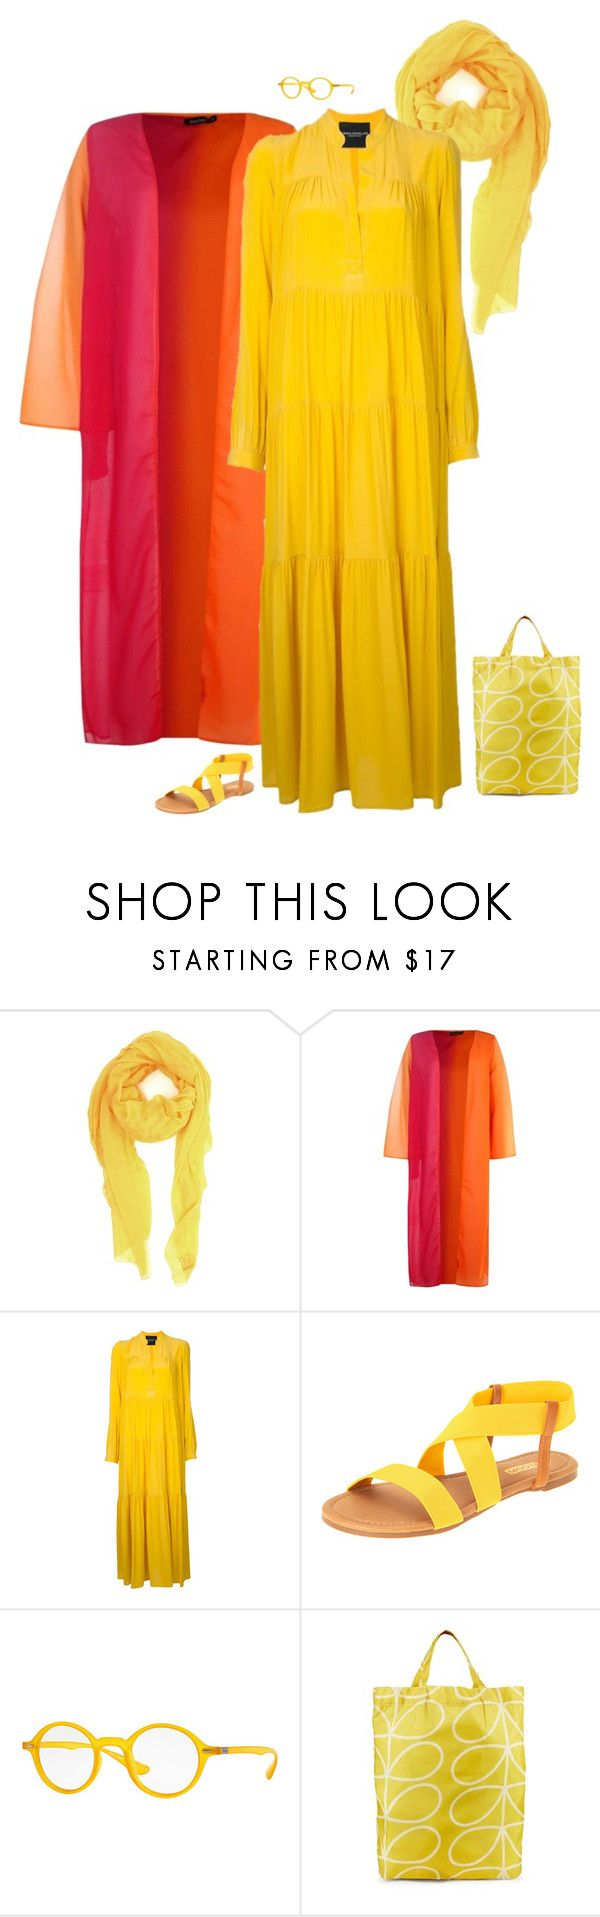 """""""Outfit 505"""" by chicagomuslima ❤ liked on Polyvore featuring M Missoni, Boohoo, Erika Cavallini Semi-Couture, Floopi, Ray-Ban, Orla Kiely, summerstyle, yellowdress, maxistyle and outfitsfortravel"""